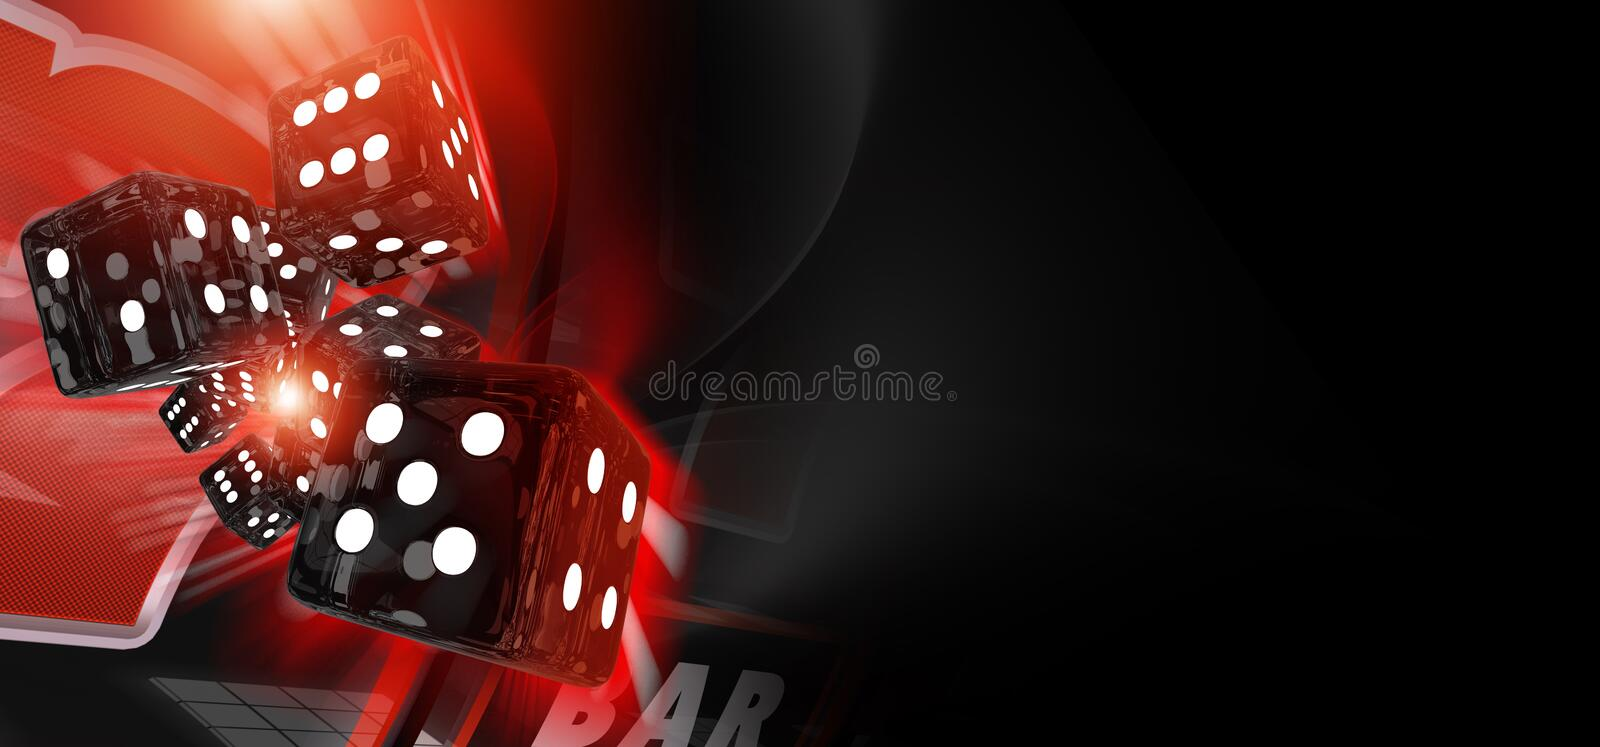 Red Craps Dices Casino Banner. 3D Rendered Illustration with Copy Space. Casino Games Theme stock image